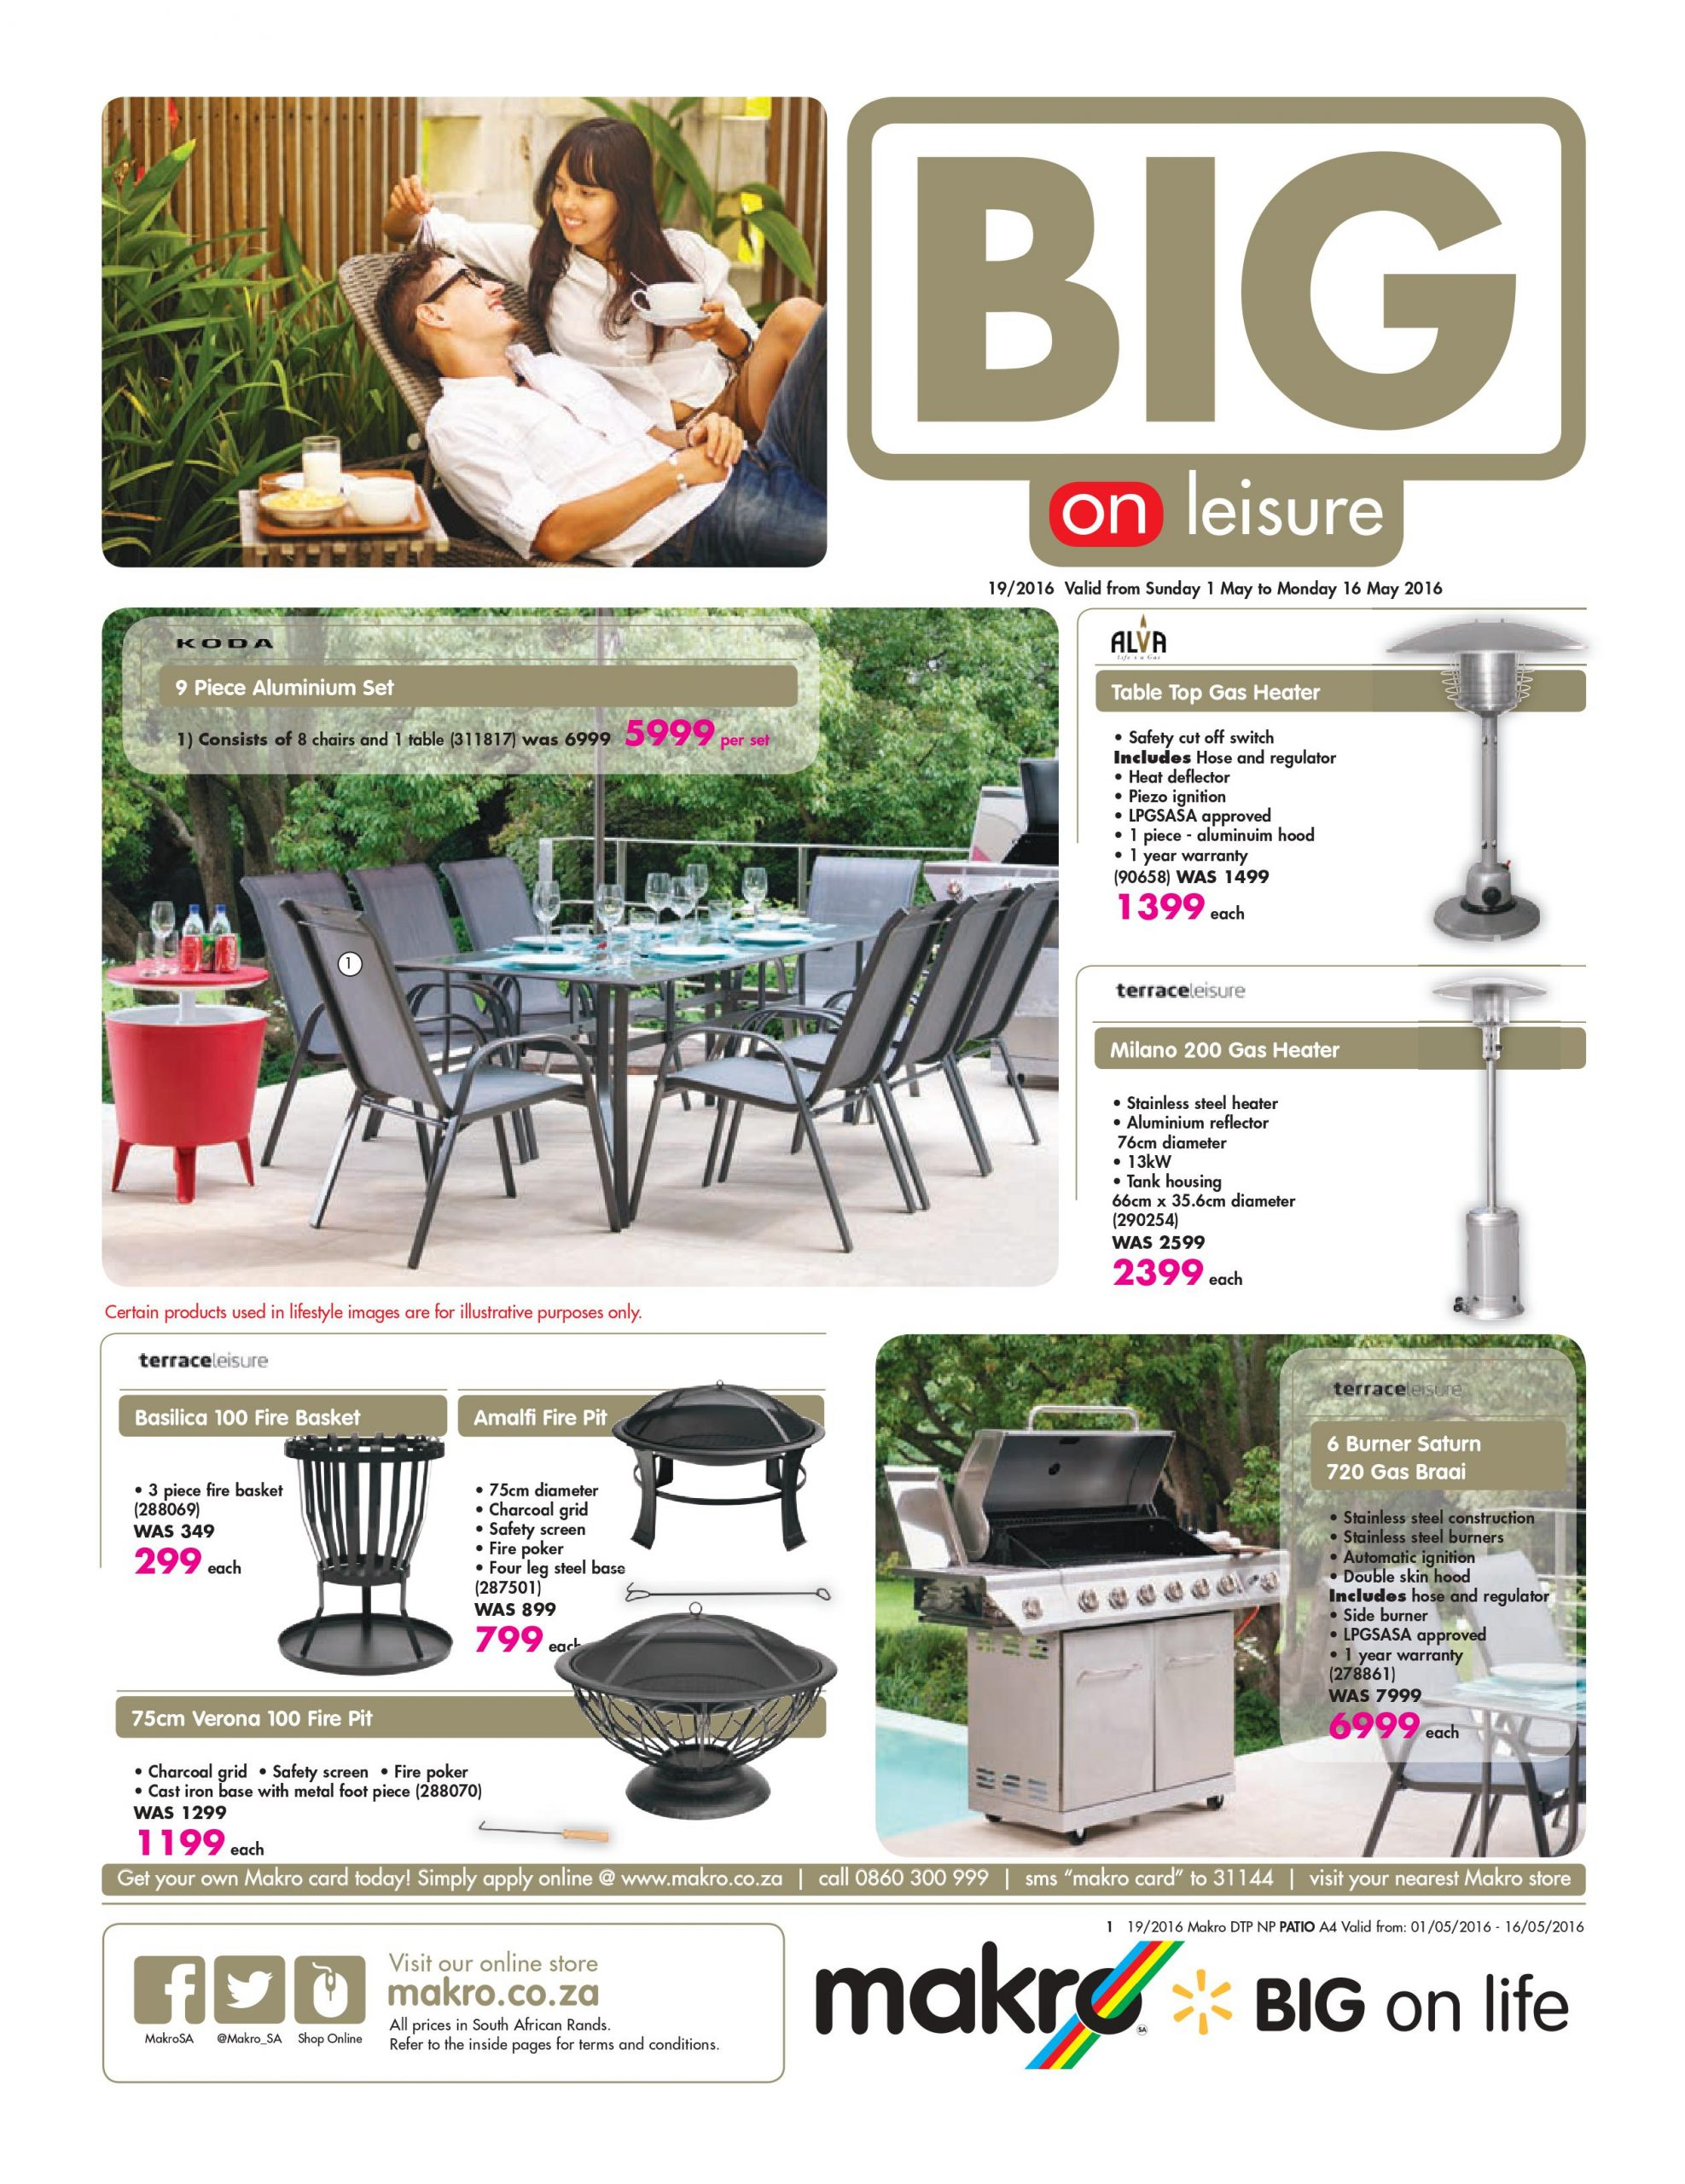 Makro Catalogue 1 May 16 May 2016 Patio Furniture with regard to dimensions 2521 X 3267